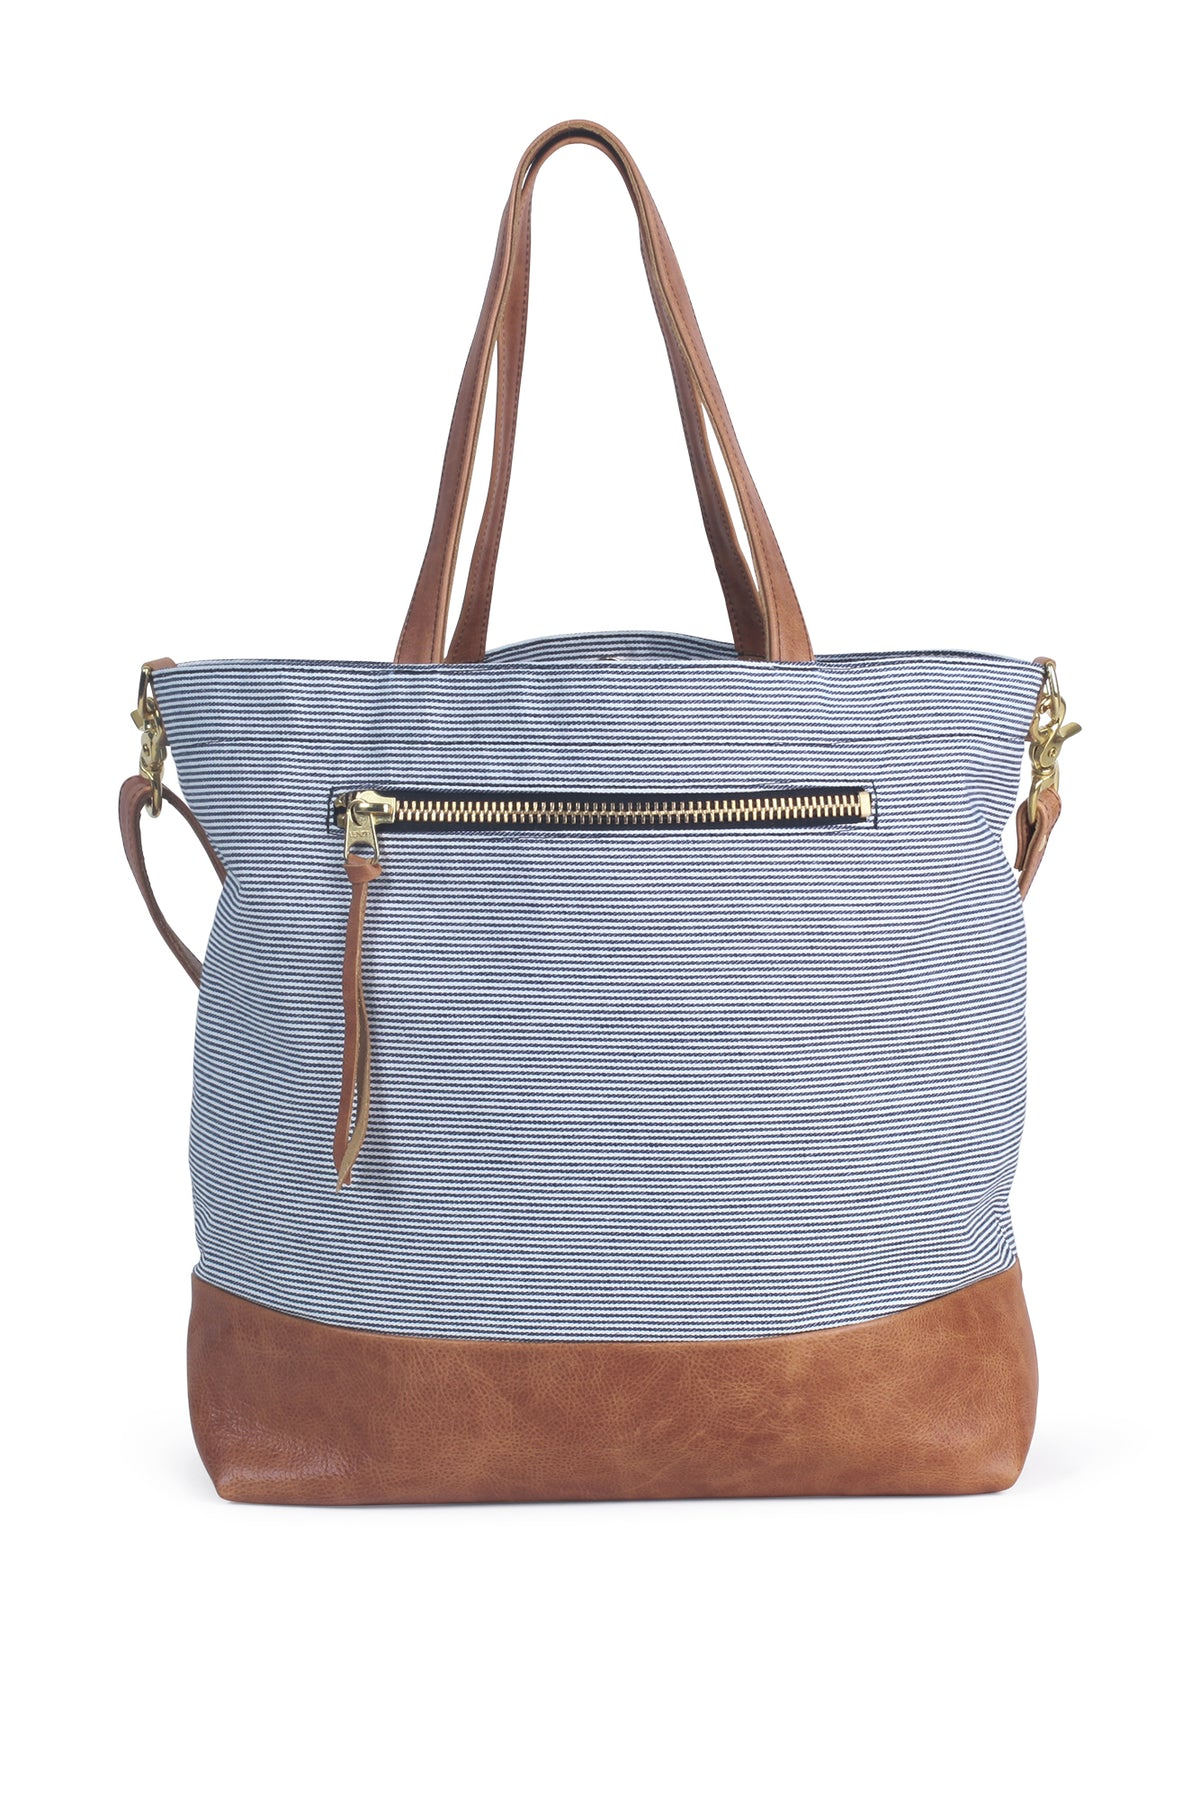 The Shia Tote - Stace - image 1